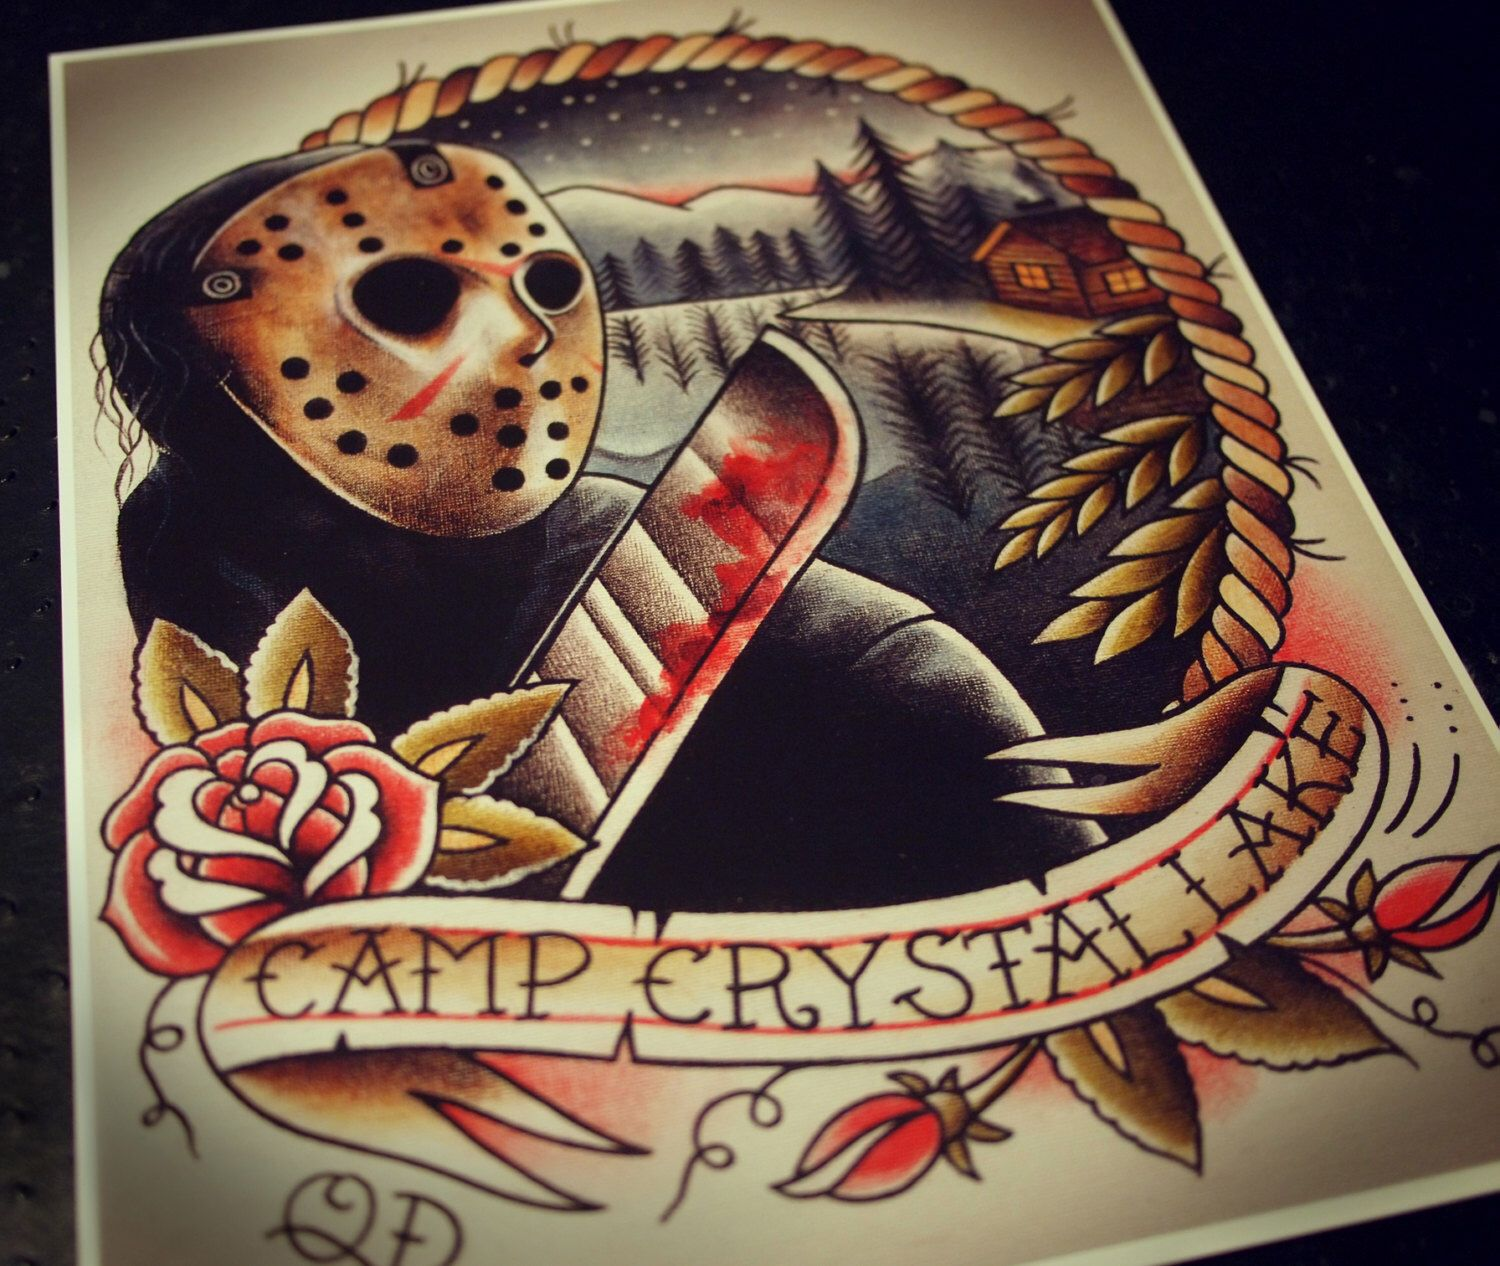 Jason Voorhees Tattoo Art Print Horror Movie Tattoos Horror Tattoo Movie Tattoos